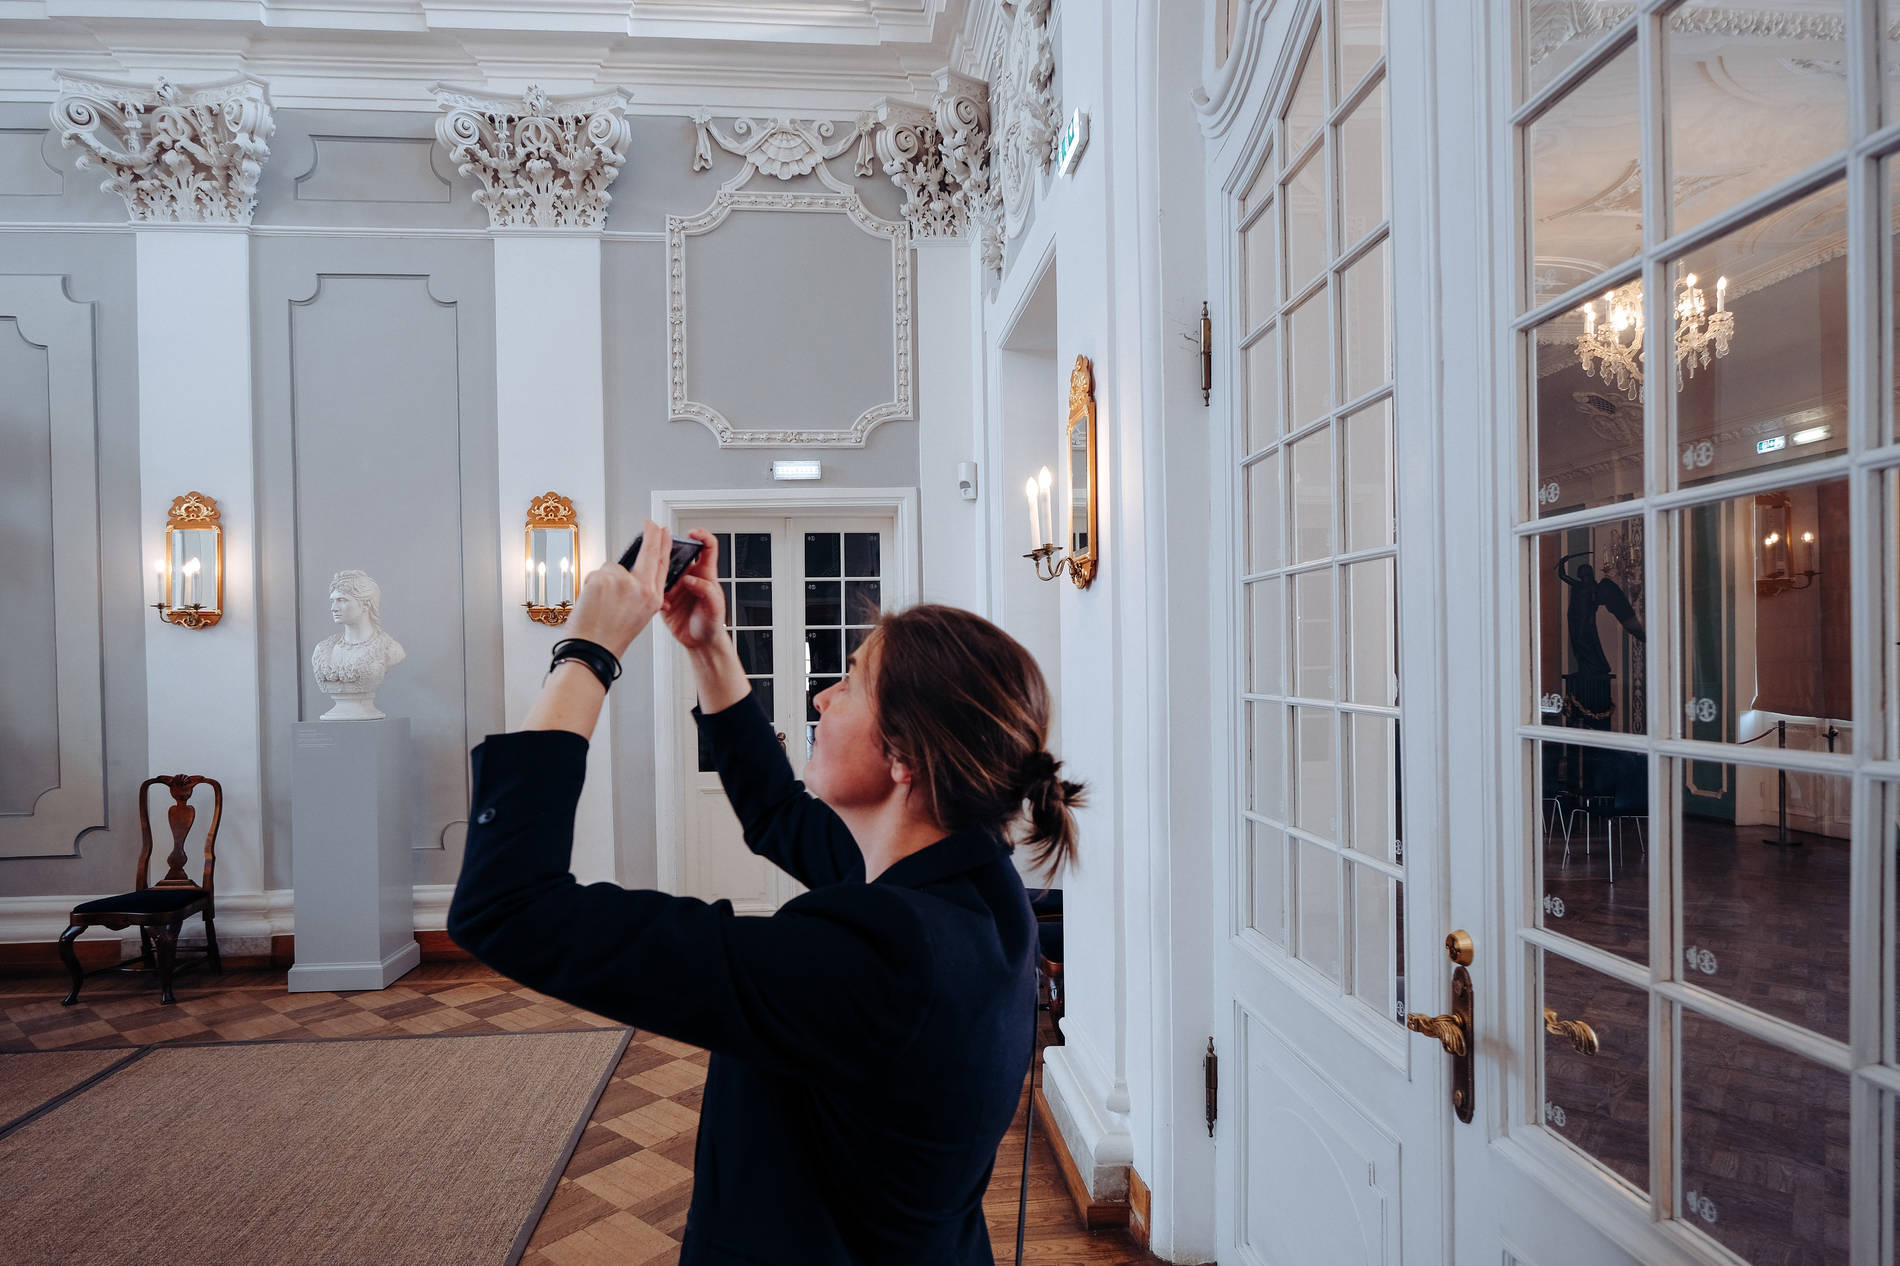 Woman taking a photo at the main hall of the Kadiorg Palace in Tallinn, Estonia